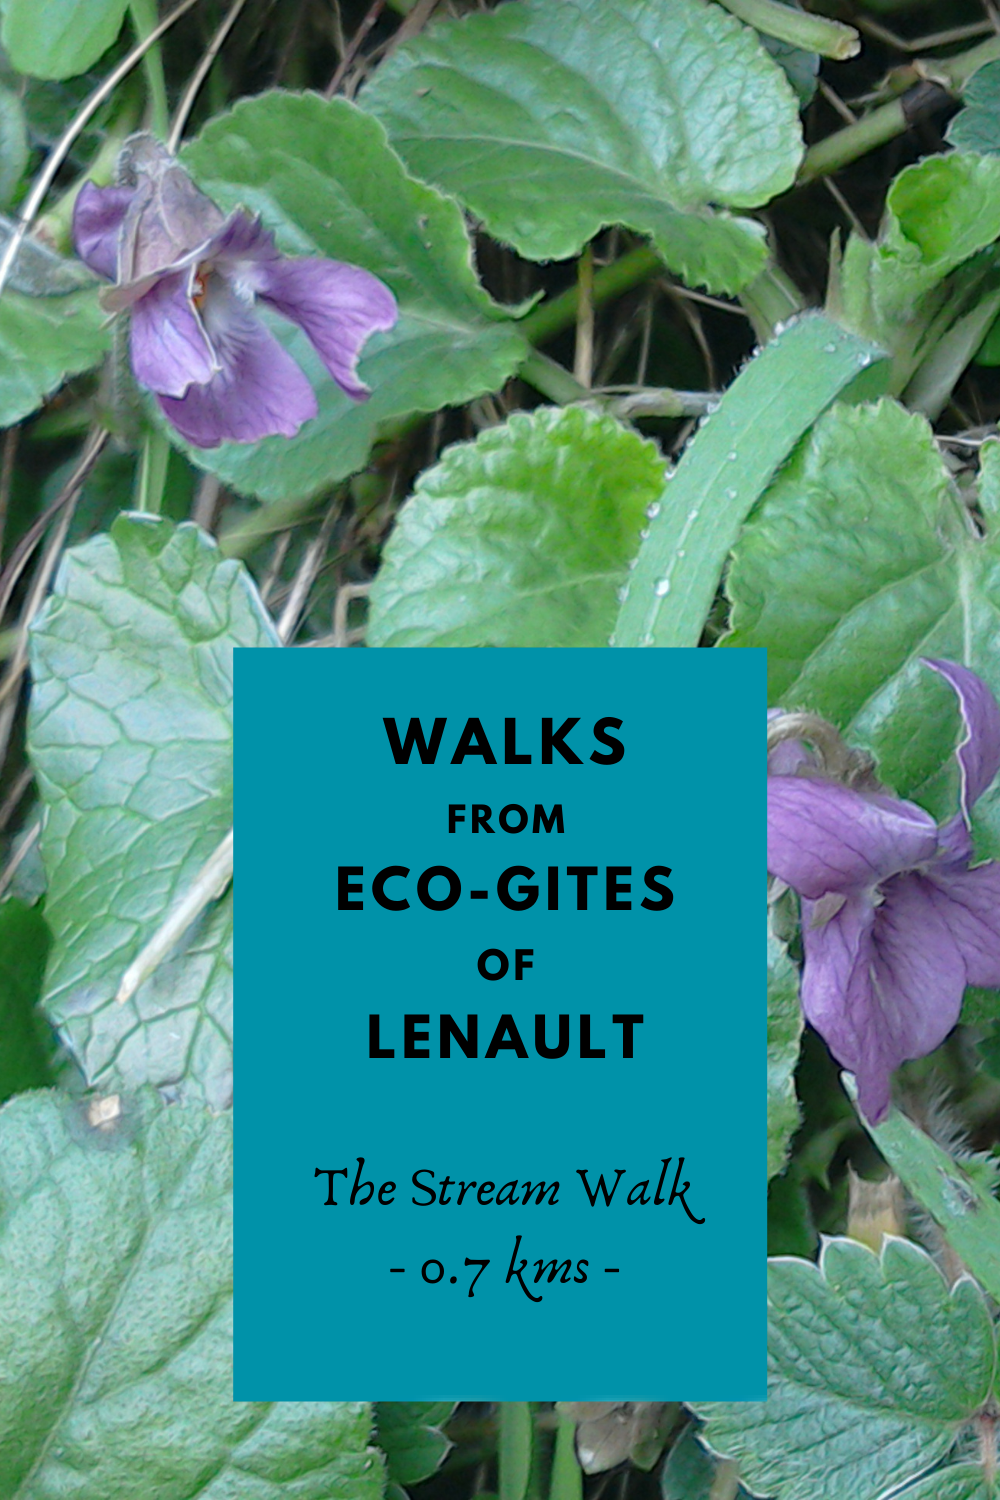 Route for the Stream Walk, Eco-Gites of Lenault, Normandy, France